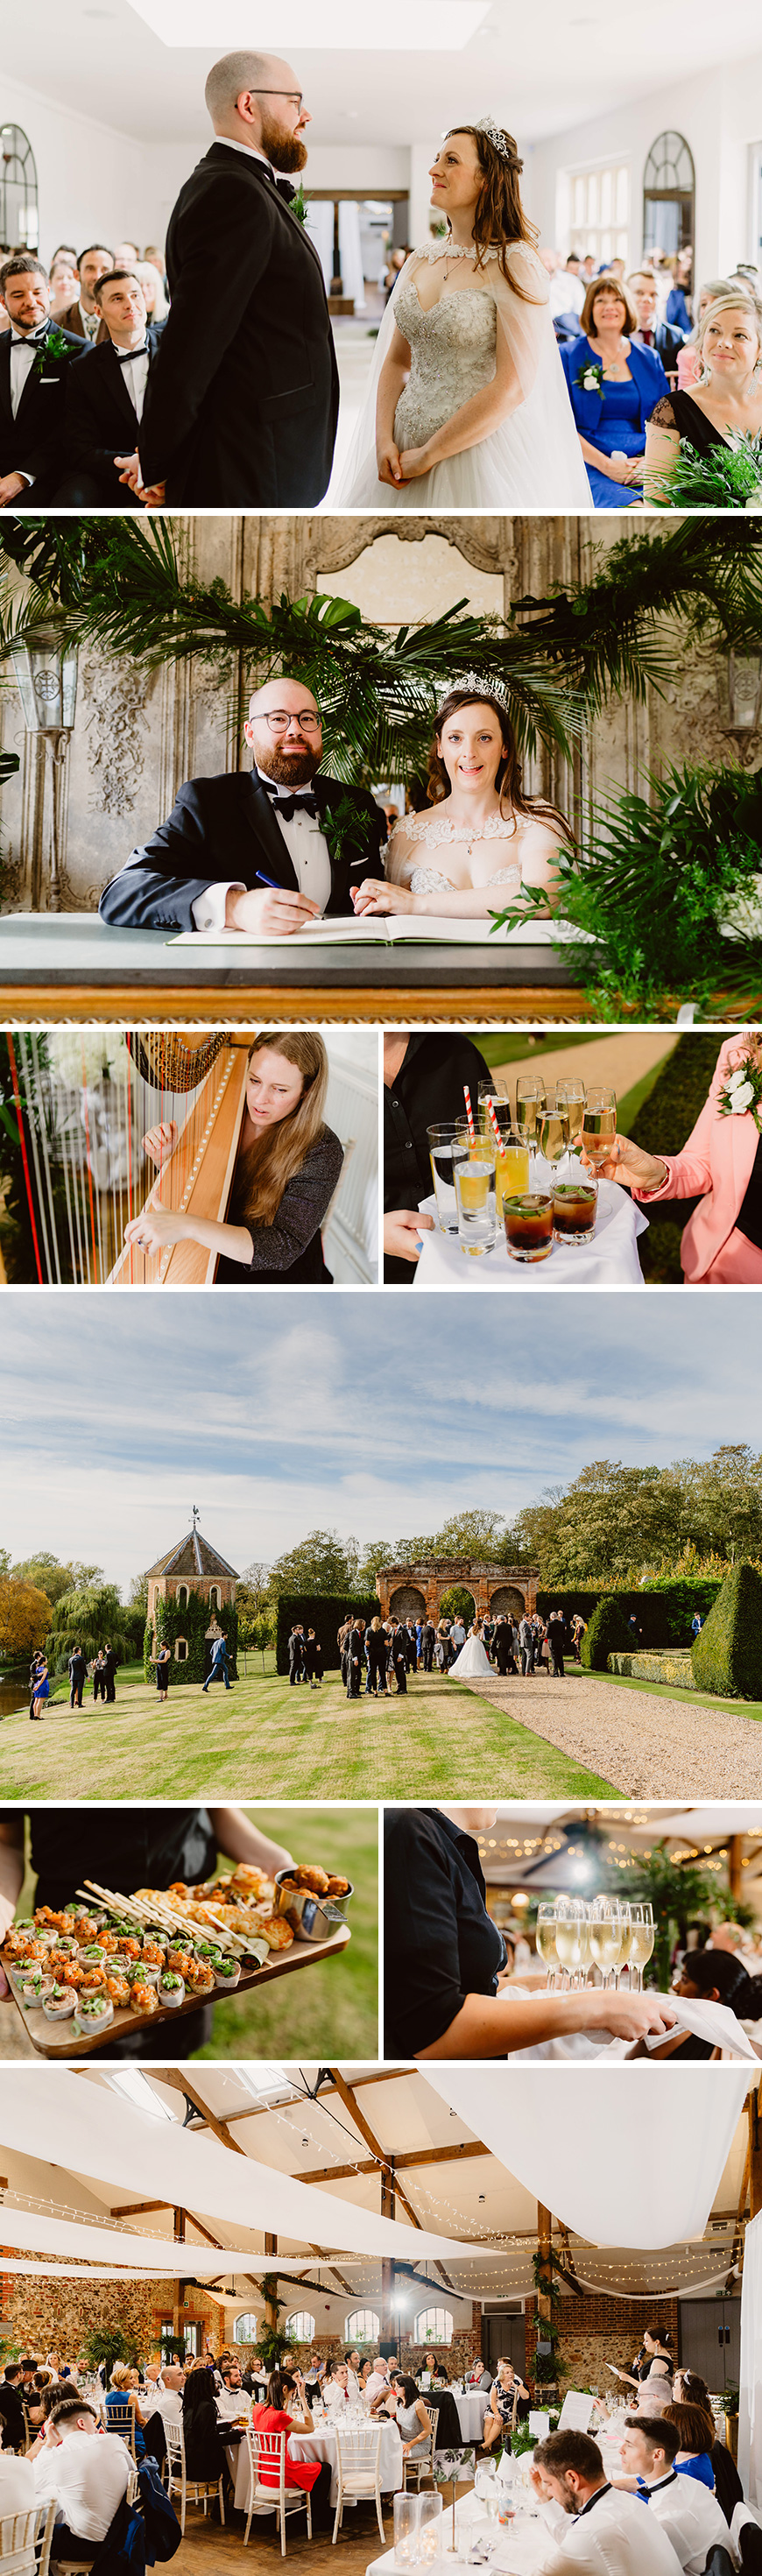 Real Wedding - Lois and Rusty's Contemporary Autumn Wedding at Oxnead Hall | CHWV